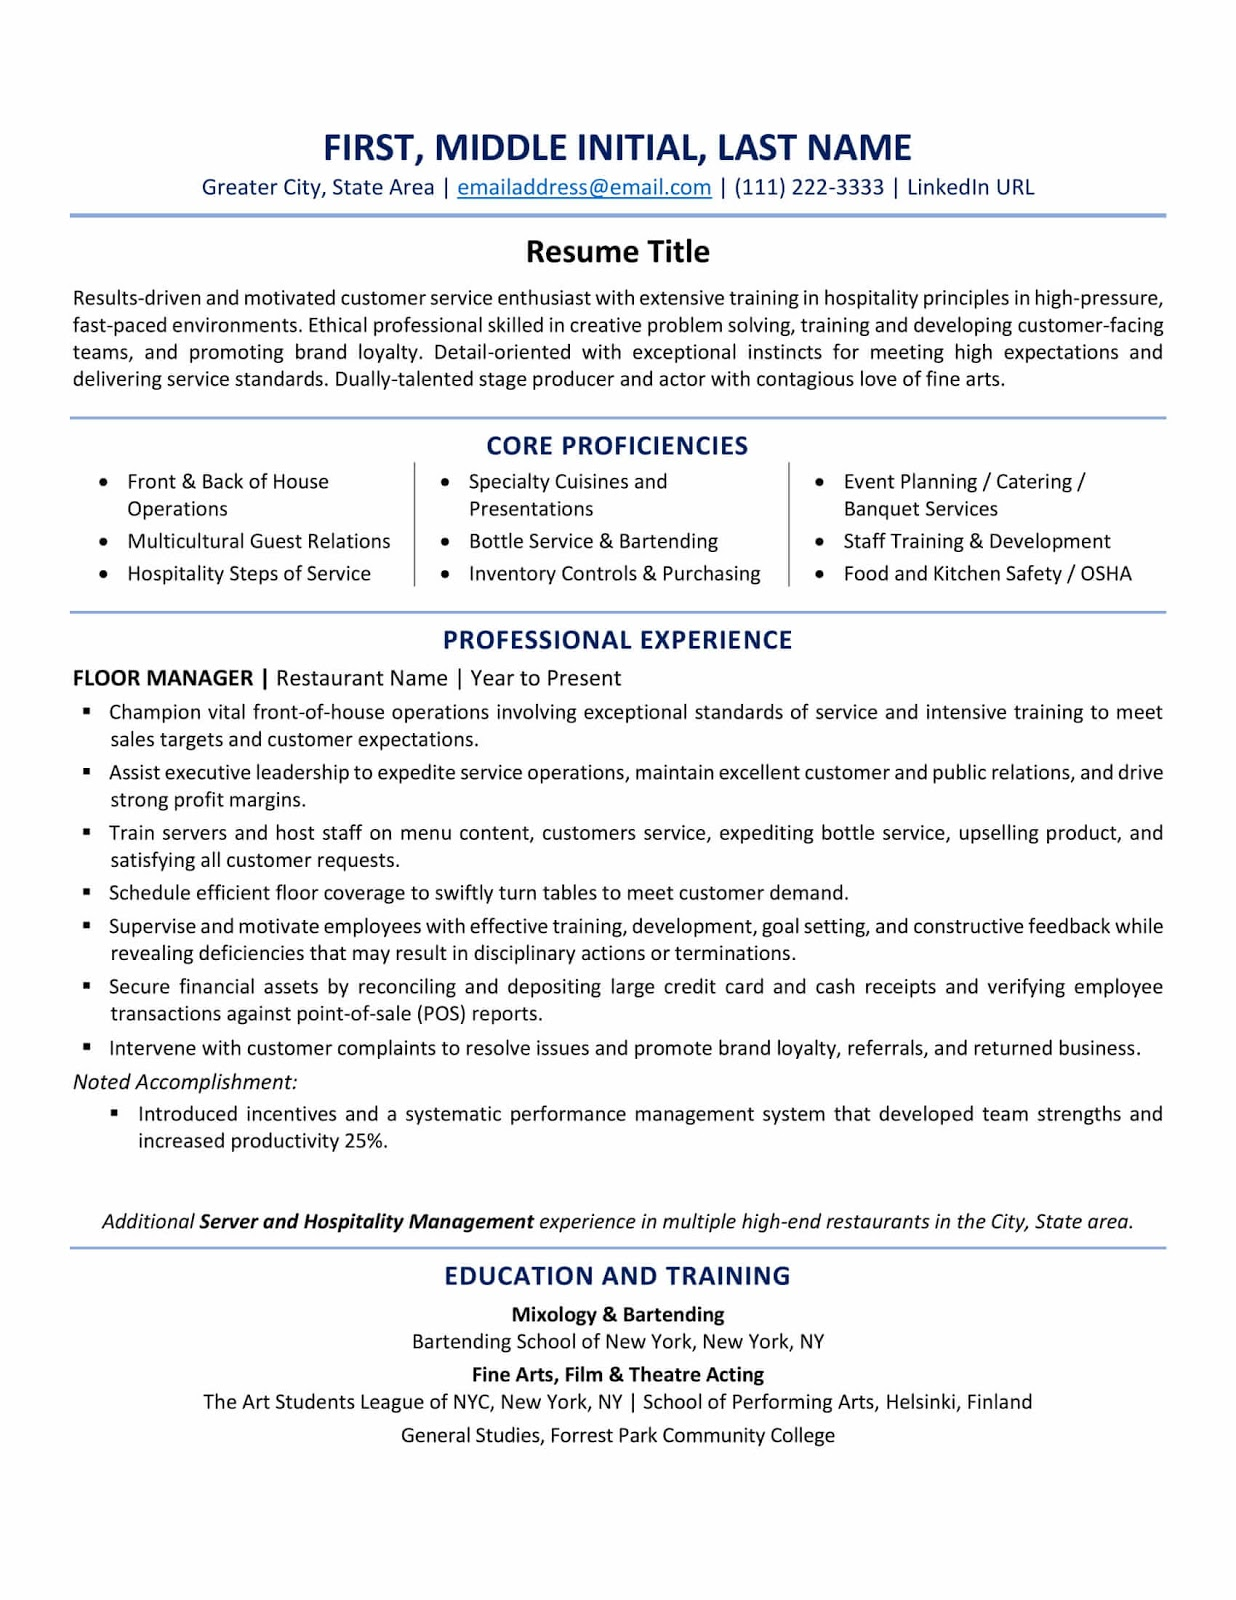 resume format best tips and examples updated top phone number builder zety hobbies for Resume Top Resume Phone Number